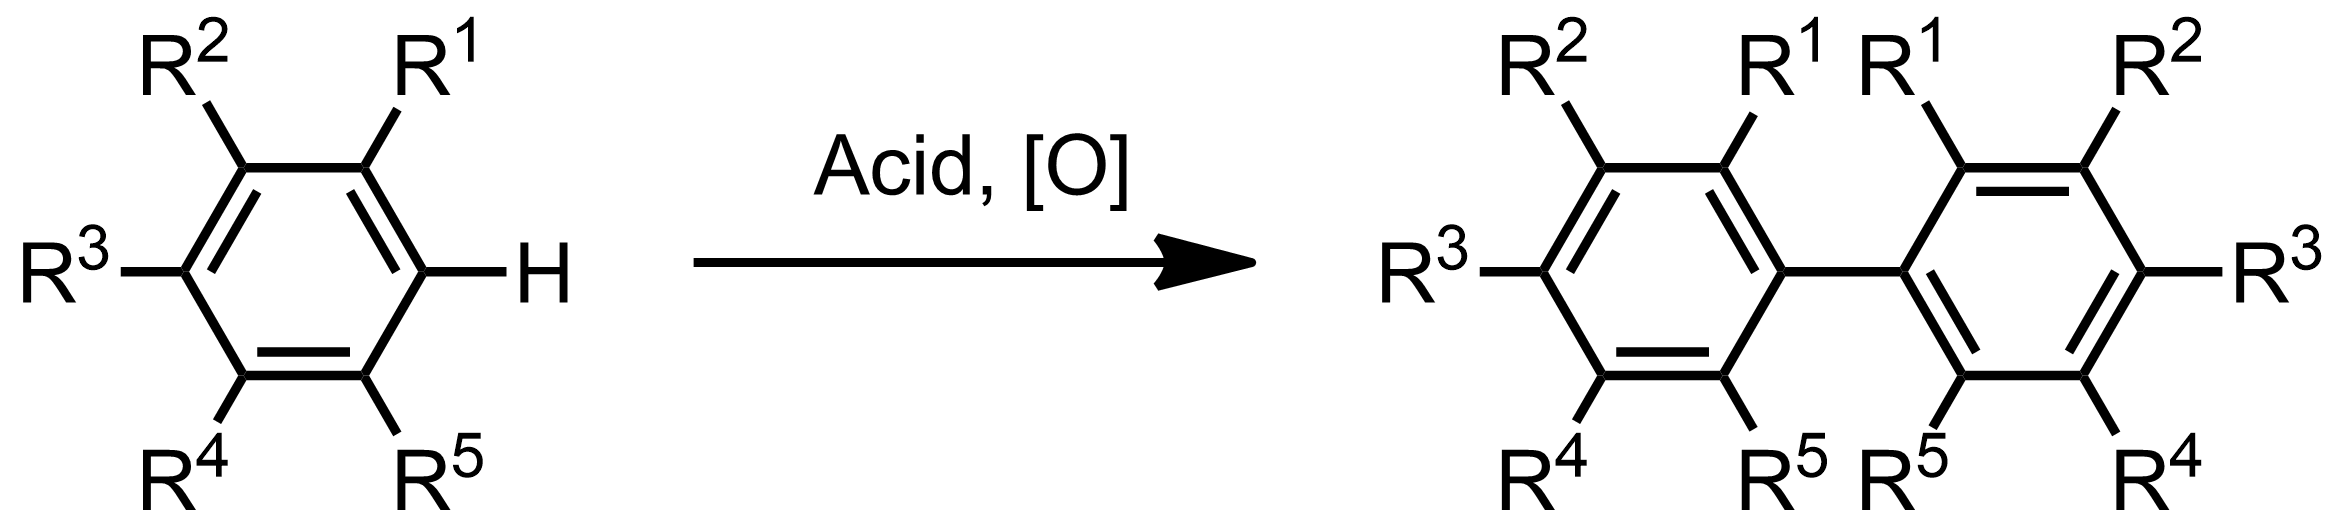 Schematic representation of the Scholl Reaction.